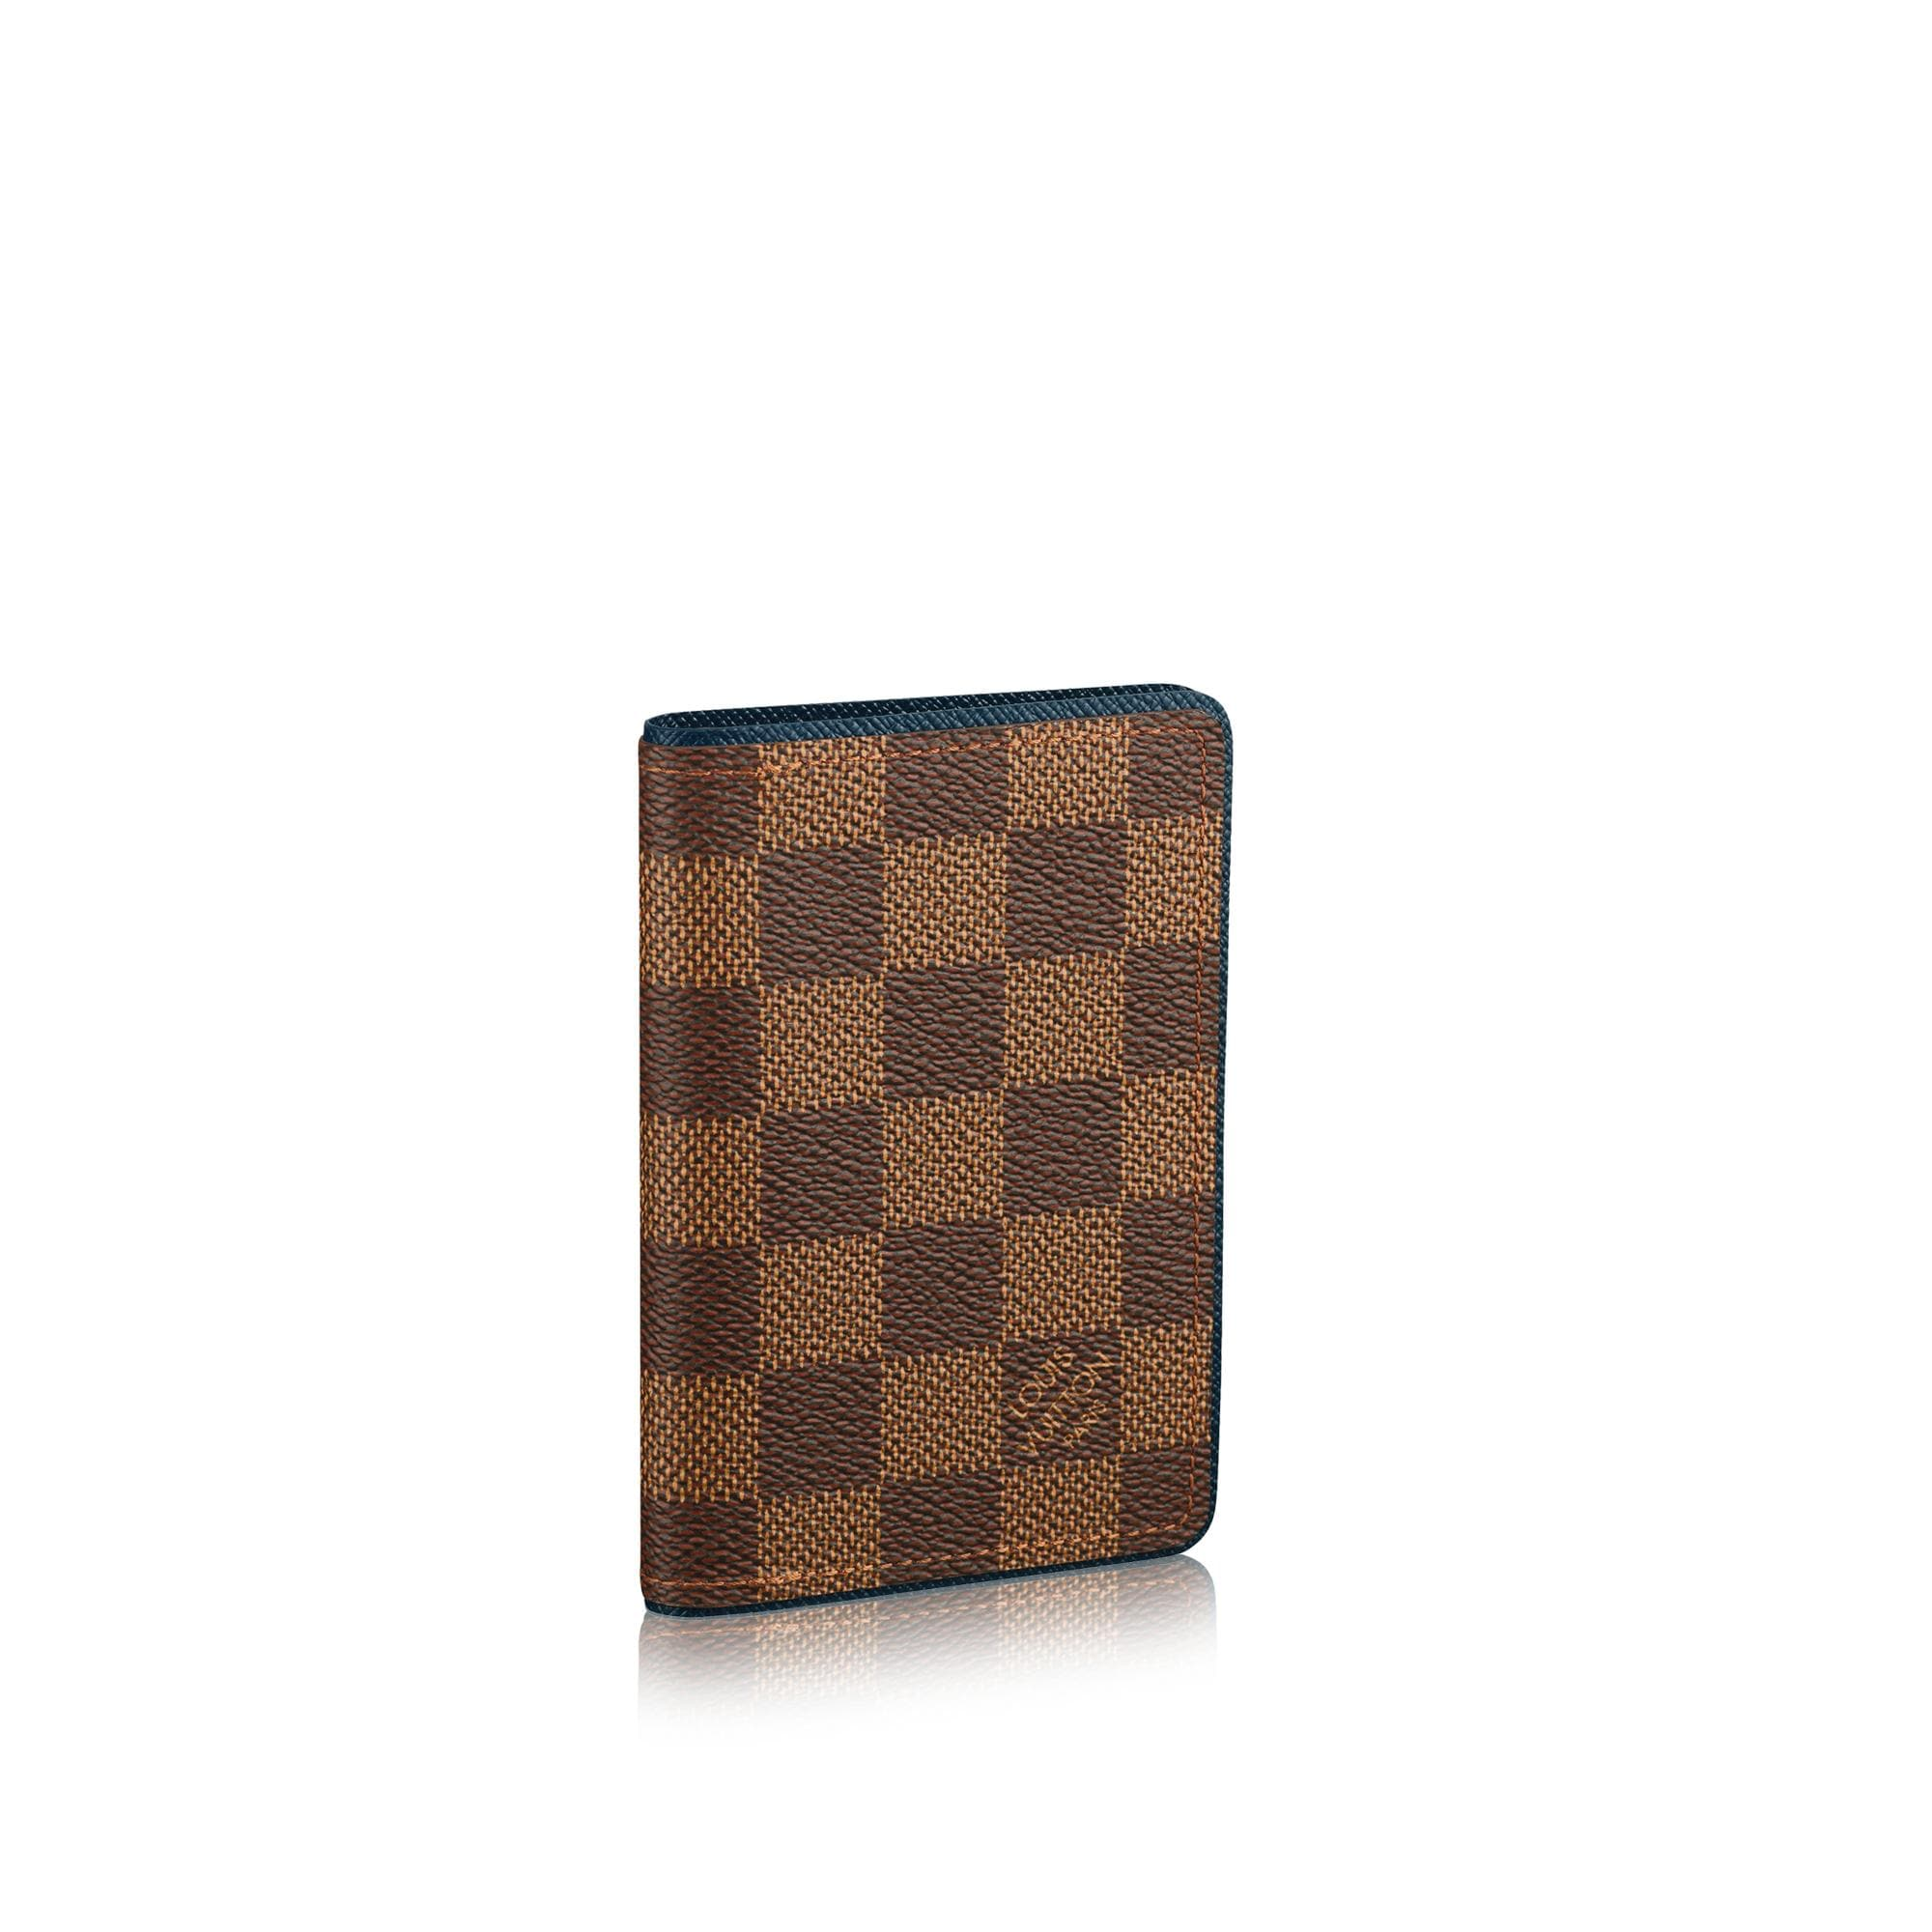 LOUIS VUITTON® Pocket Organiser  Damier Ebene Canvas - Card Holders Small Leather Goods